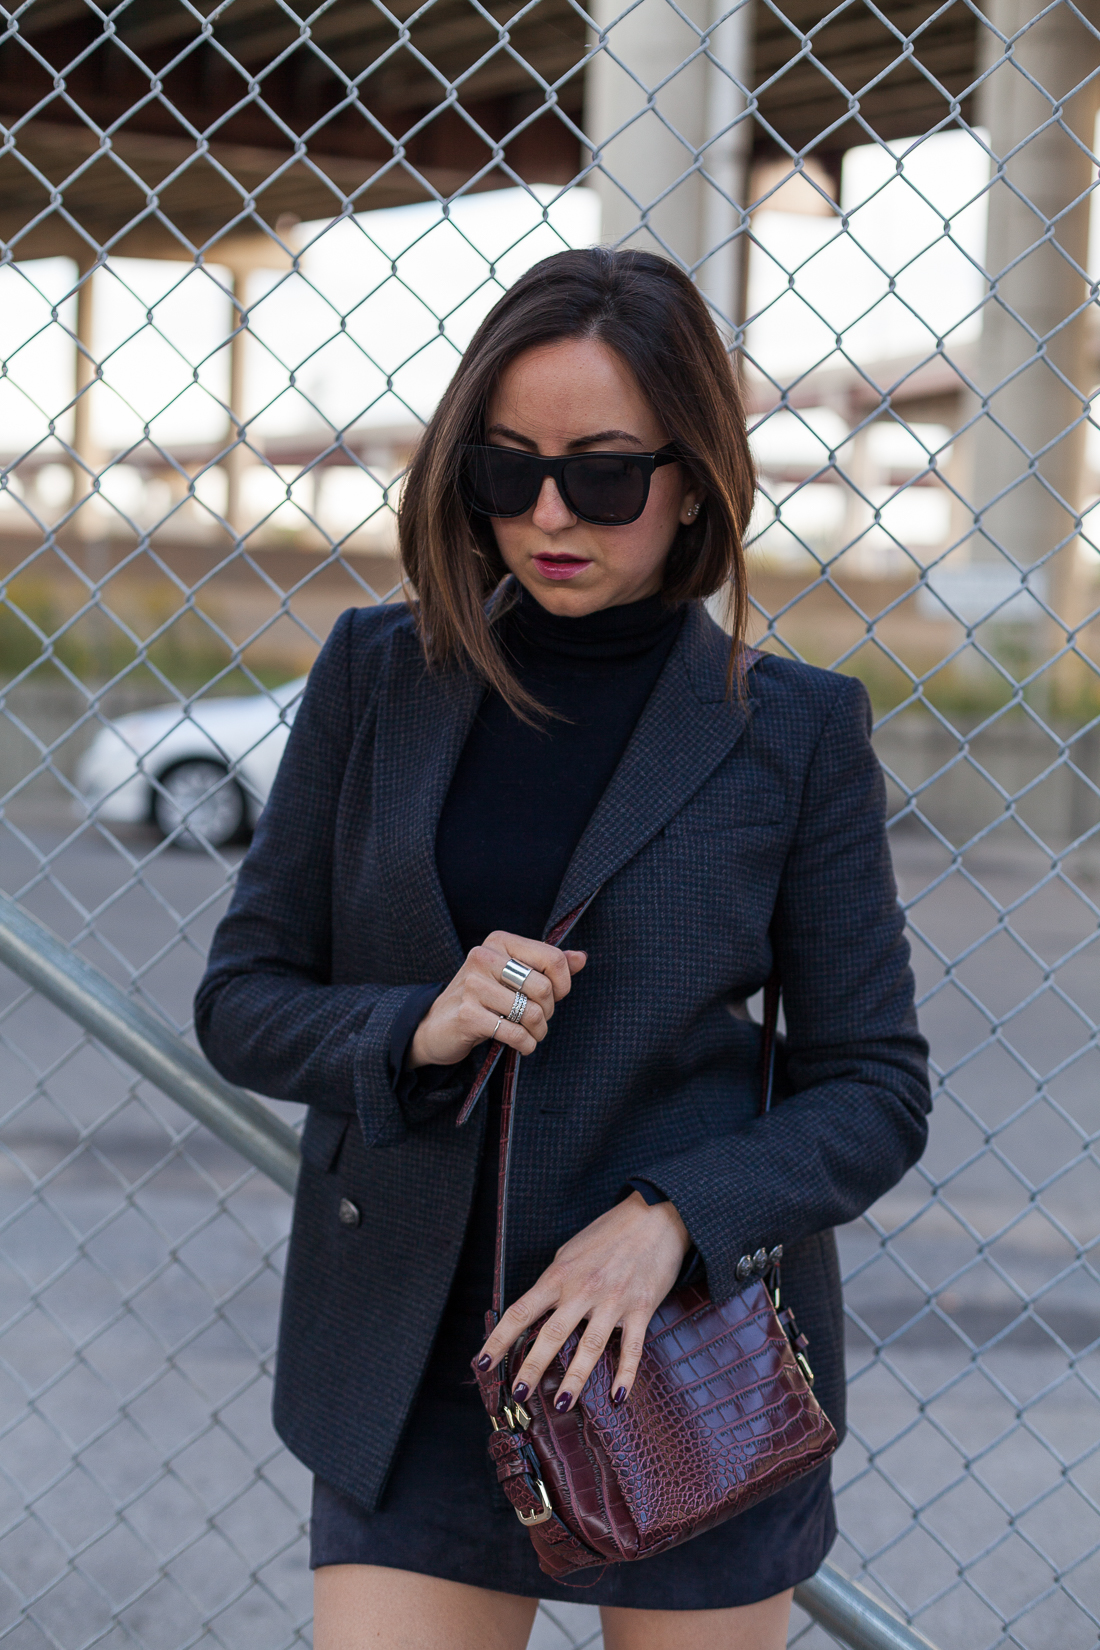 Yana Frigelis of NoMad Luxuries wearing a monochrome look in navy from theory and zara for Fall fashion